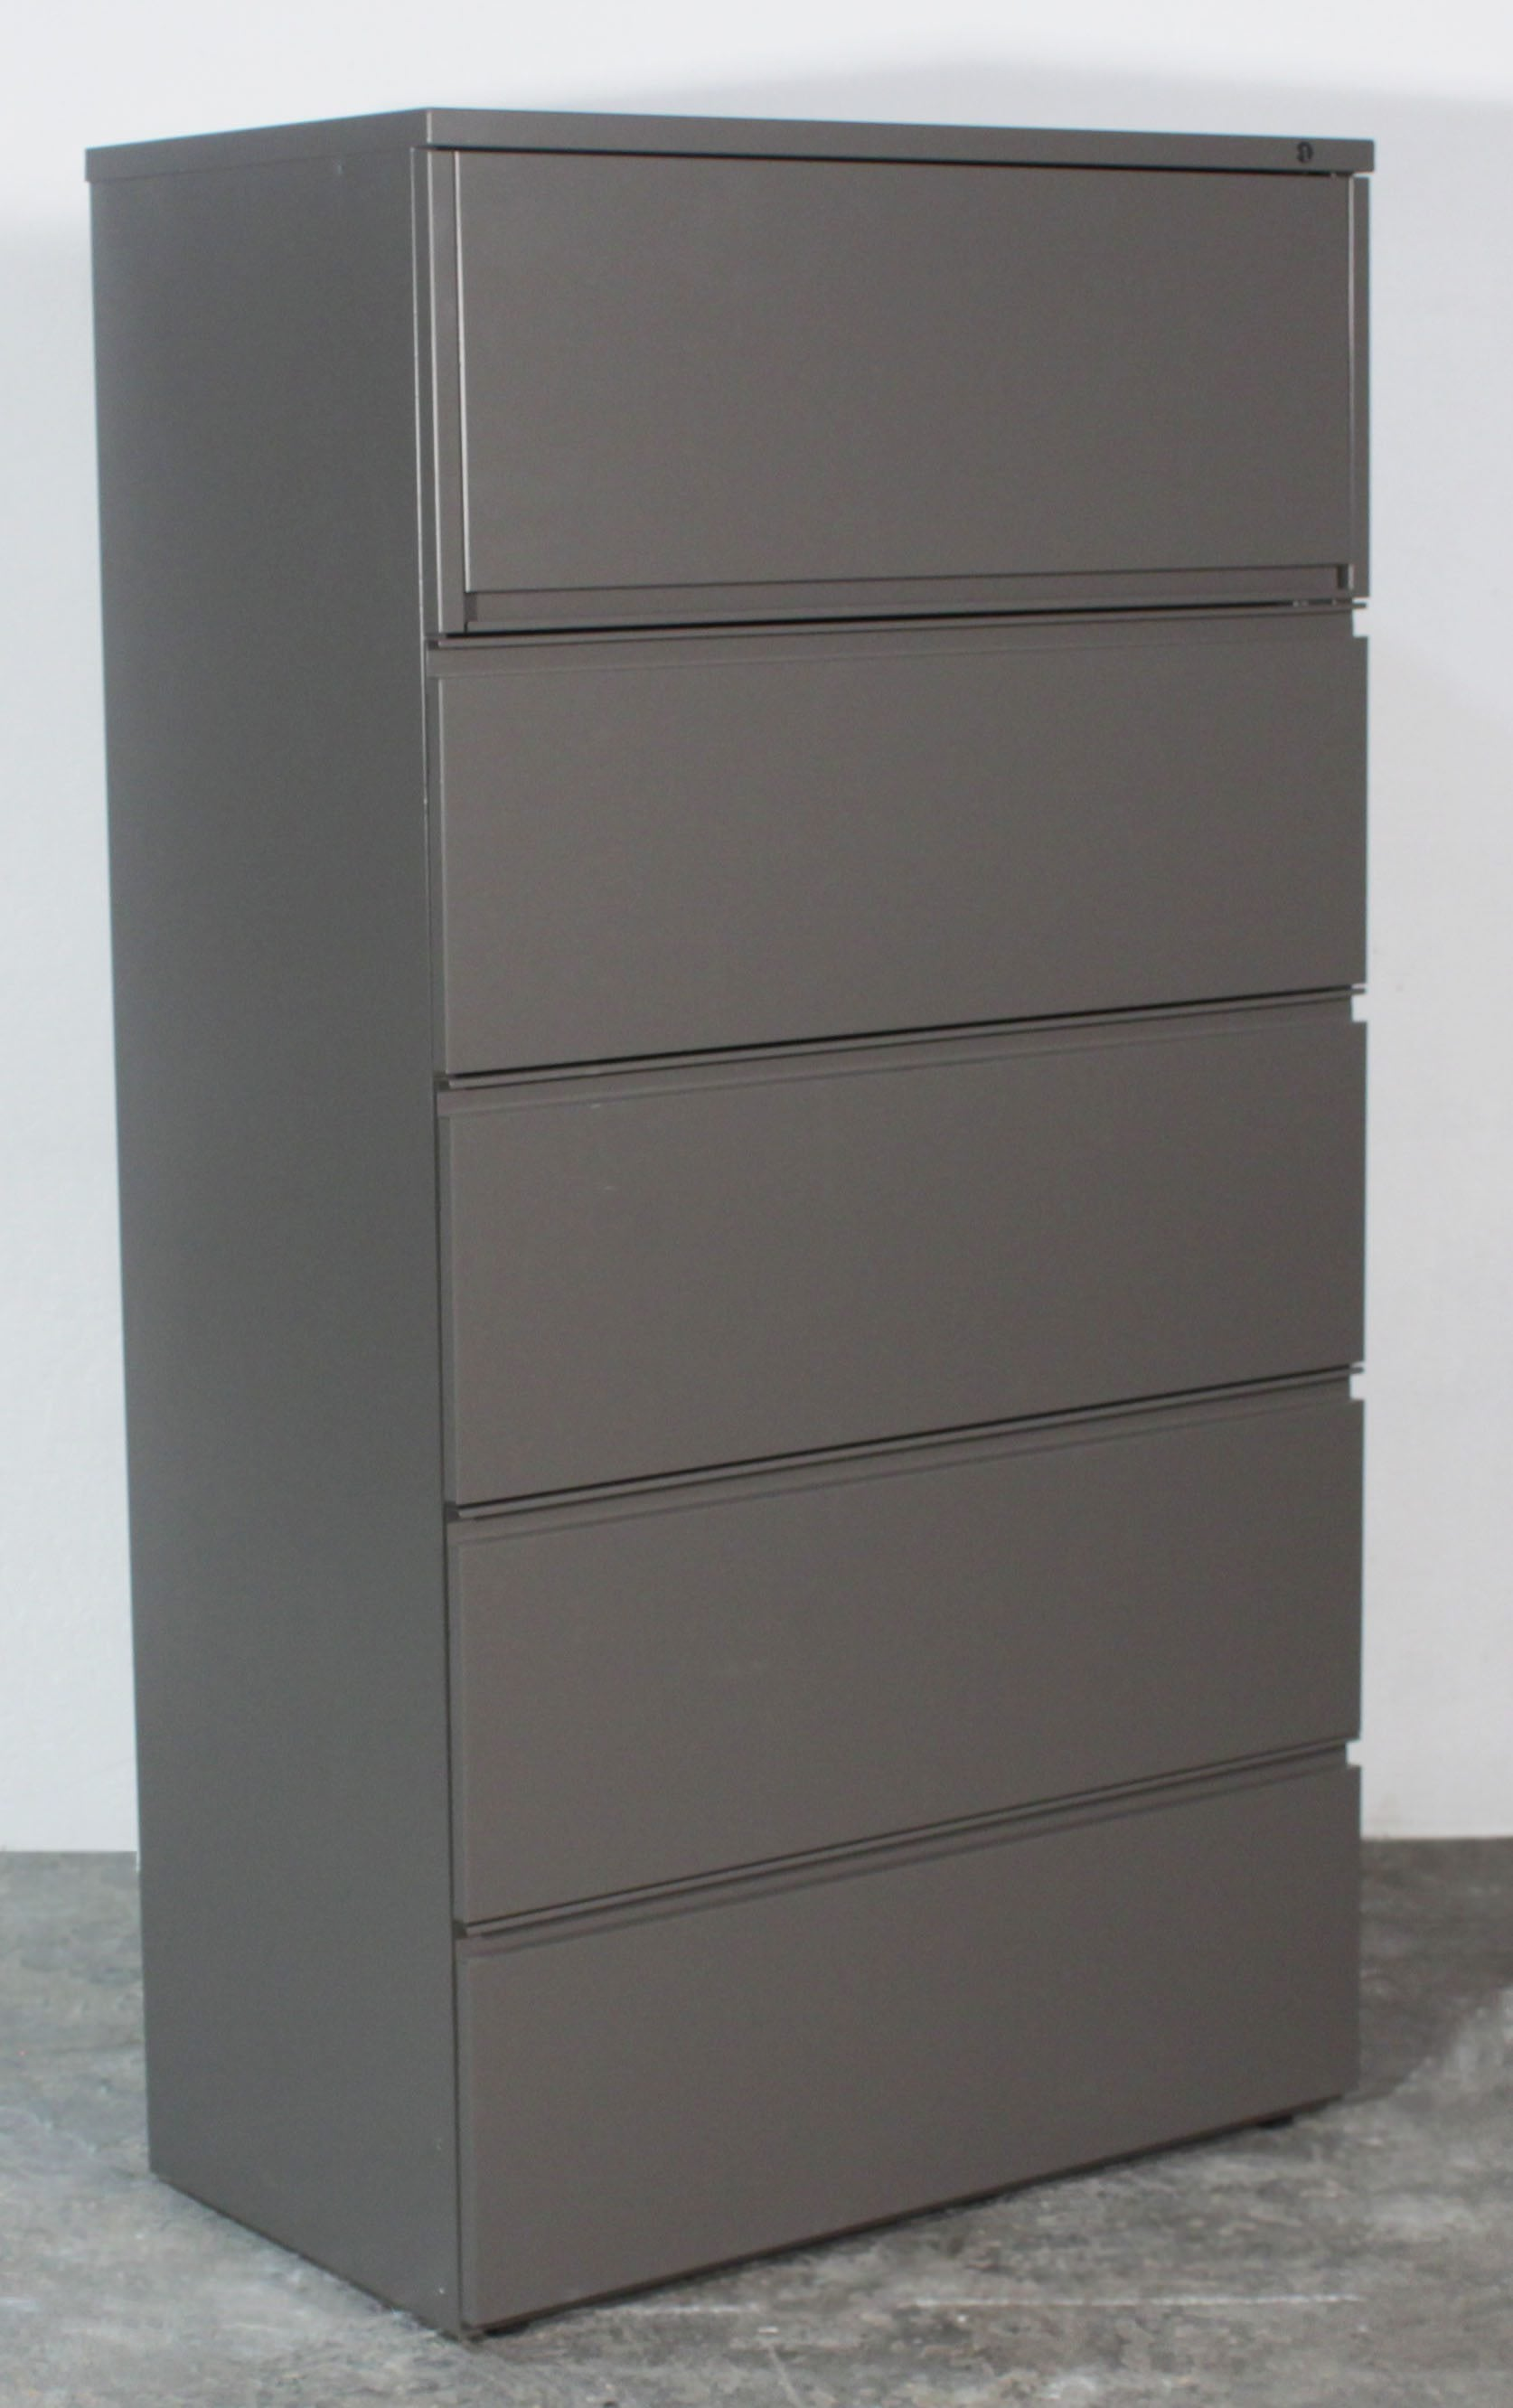 dimensions regard steelcase cabinets cabinet horizontal to with hon file lateral x drawer design